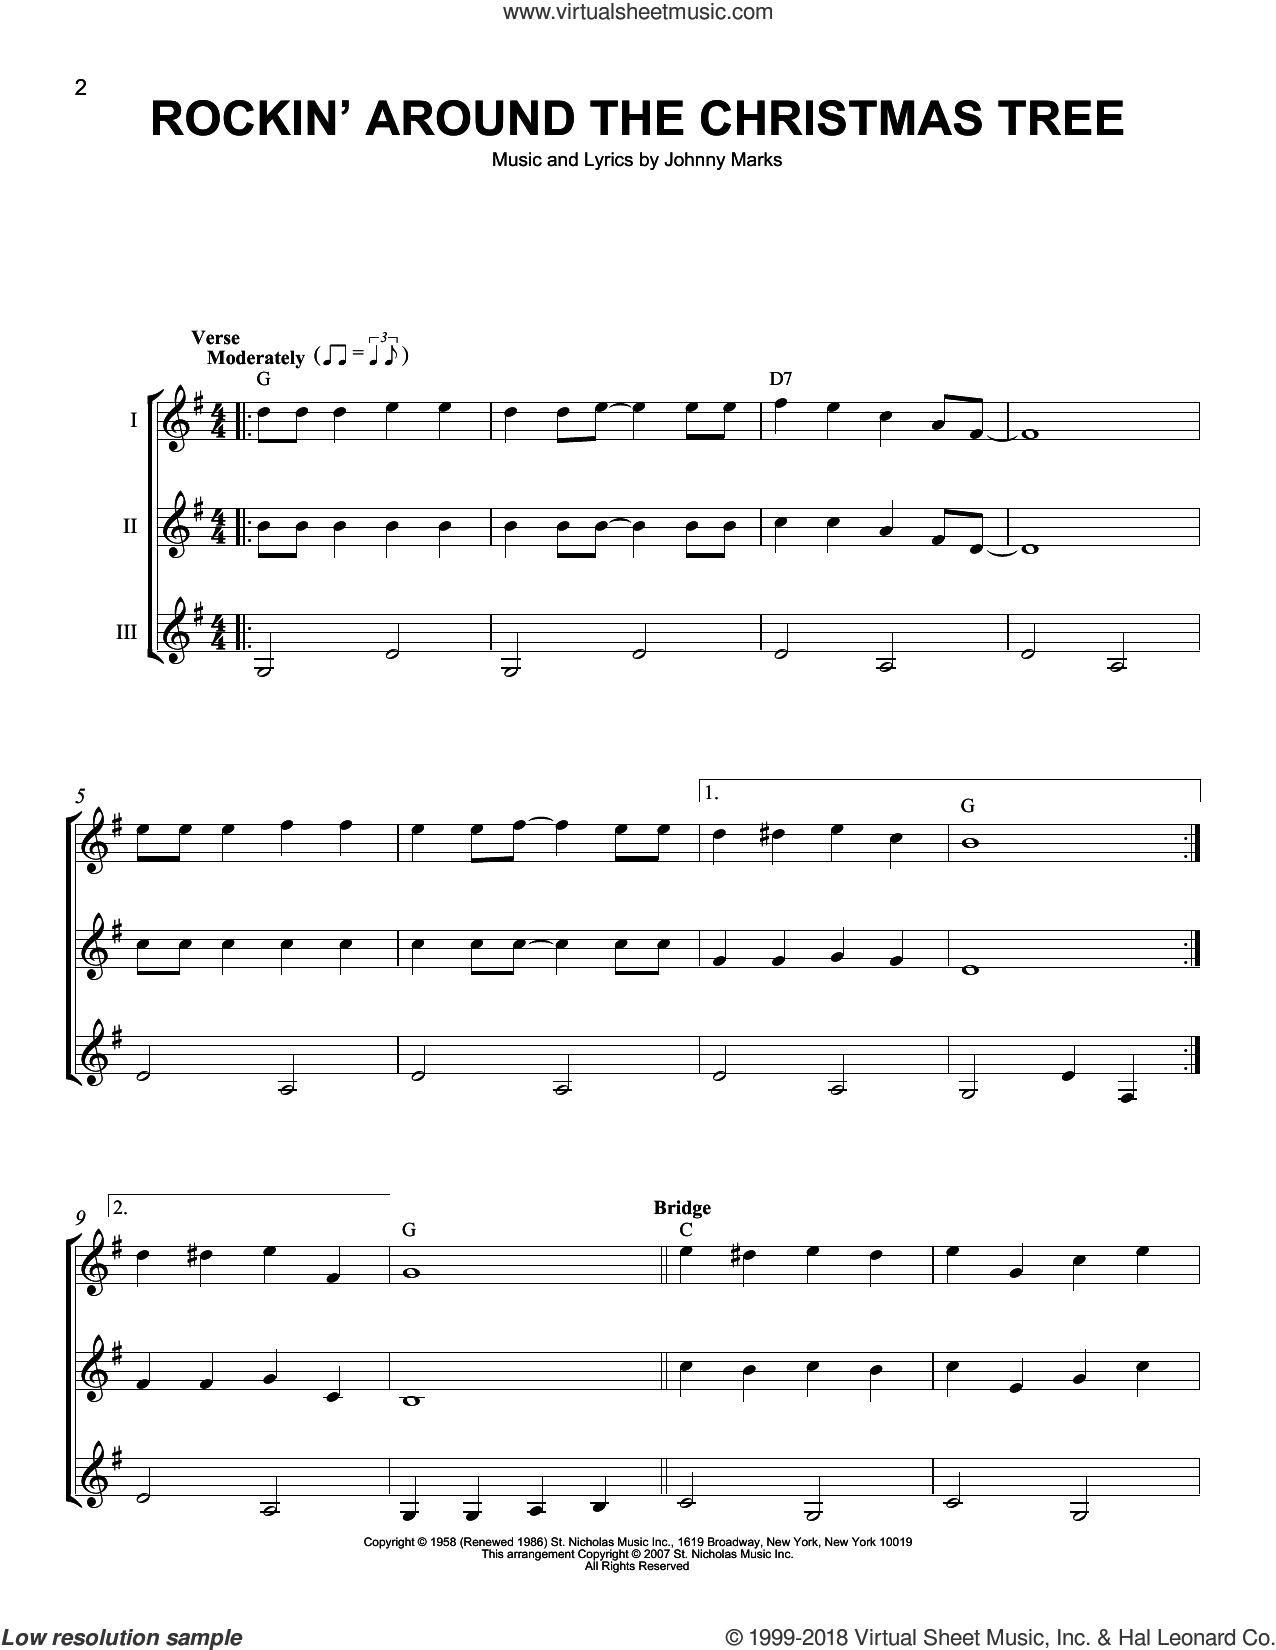 Rockin' Around The Christmas Tree sheet music for guitar ensemble by Johnny Marks, J Arnold, LeAnn Rimes and Toby Keith, intermediate skill level